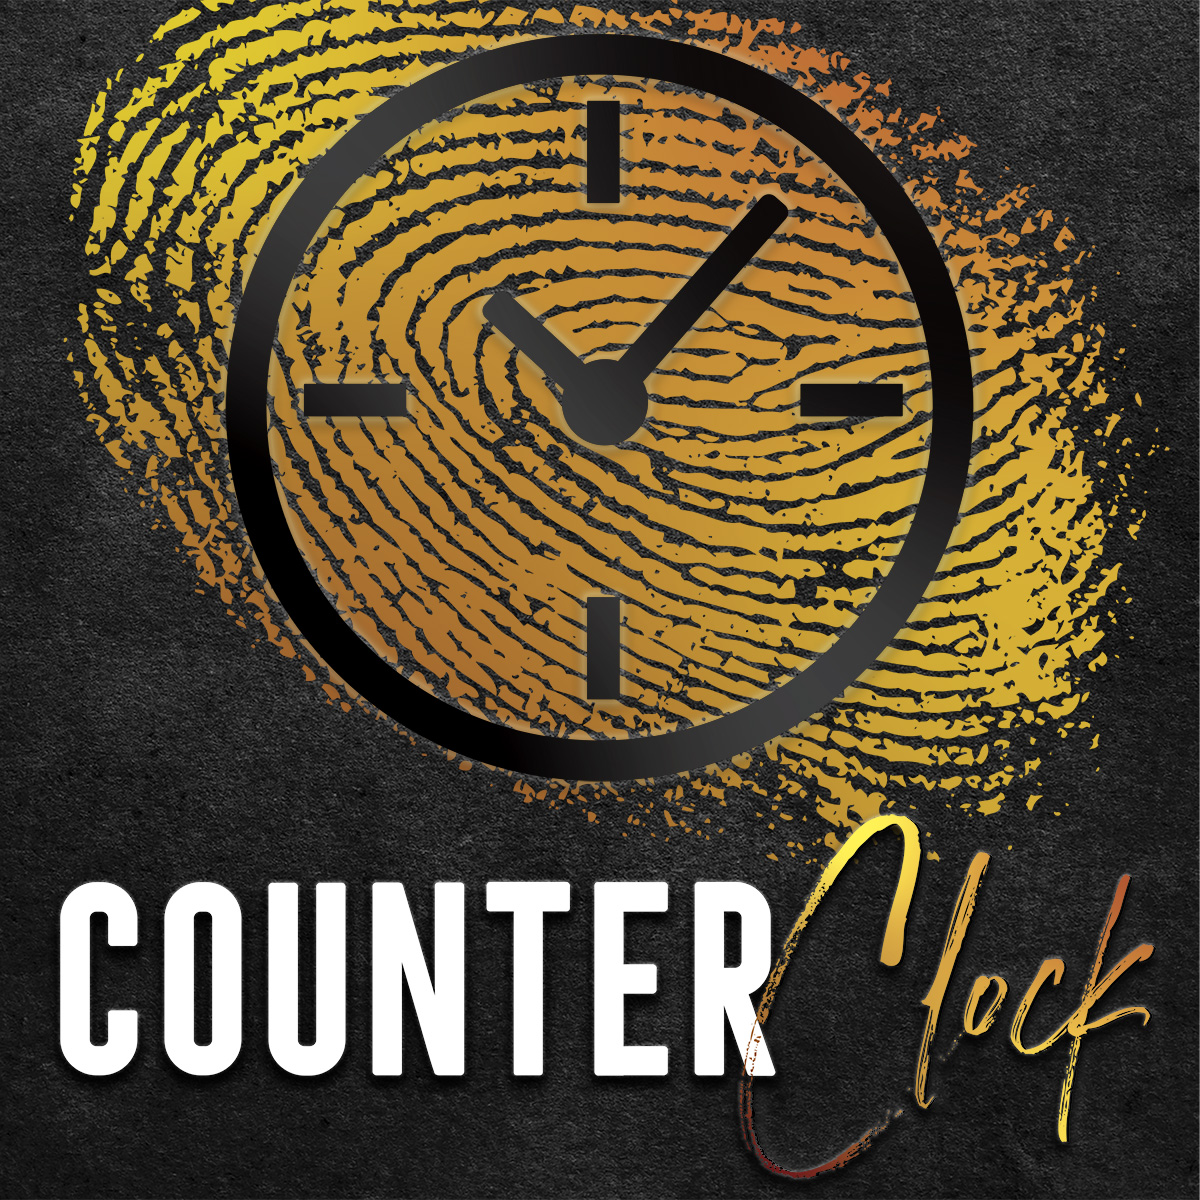 CounterClock logo